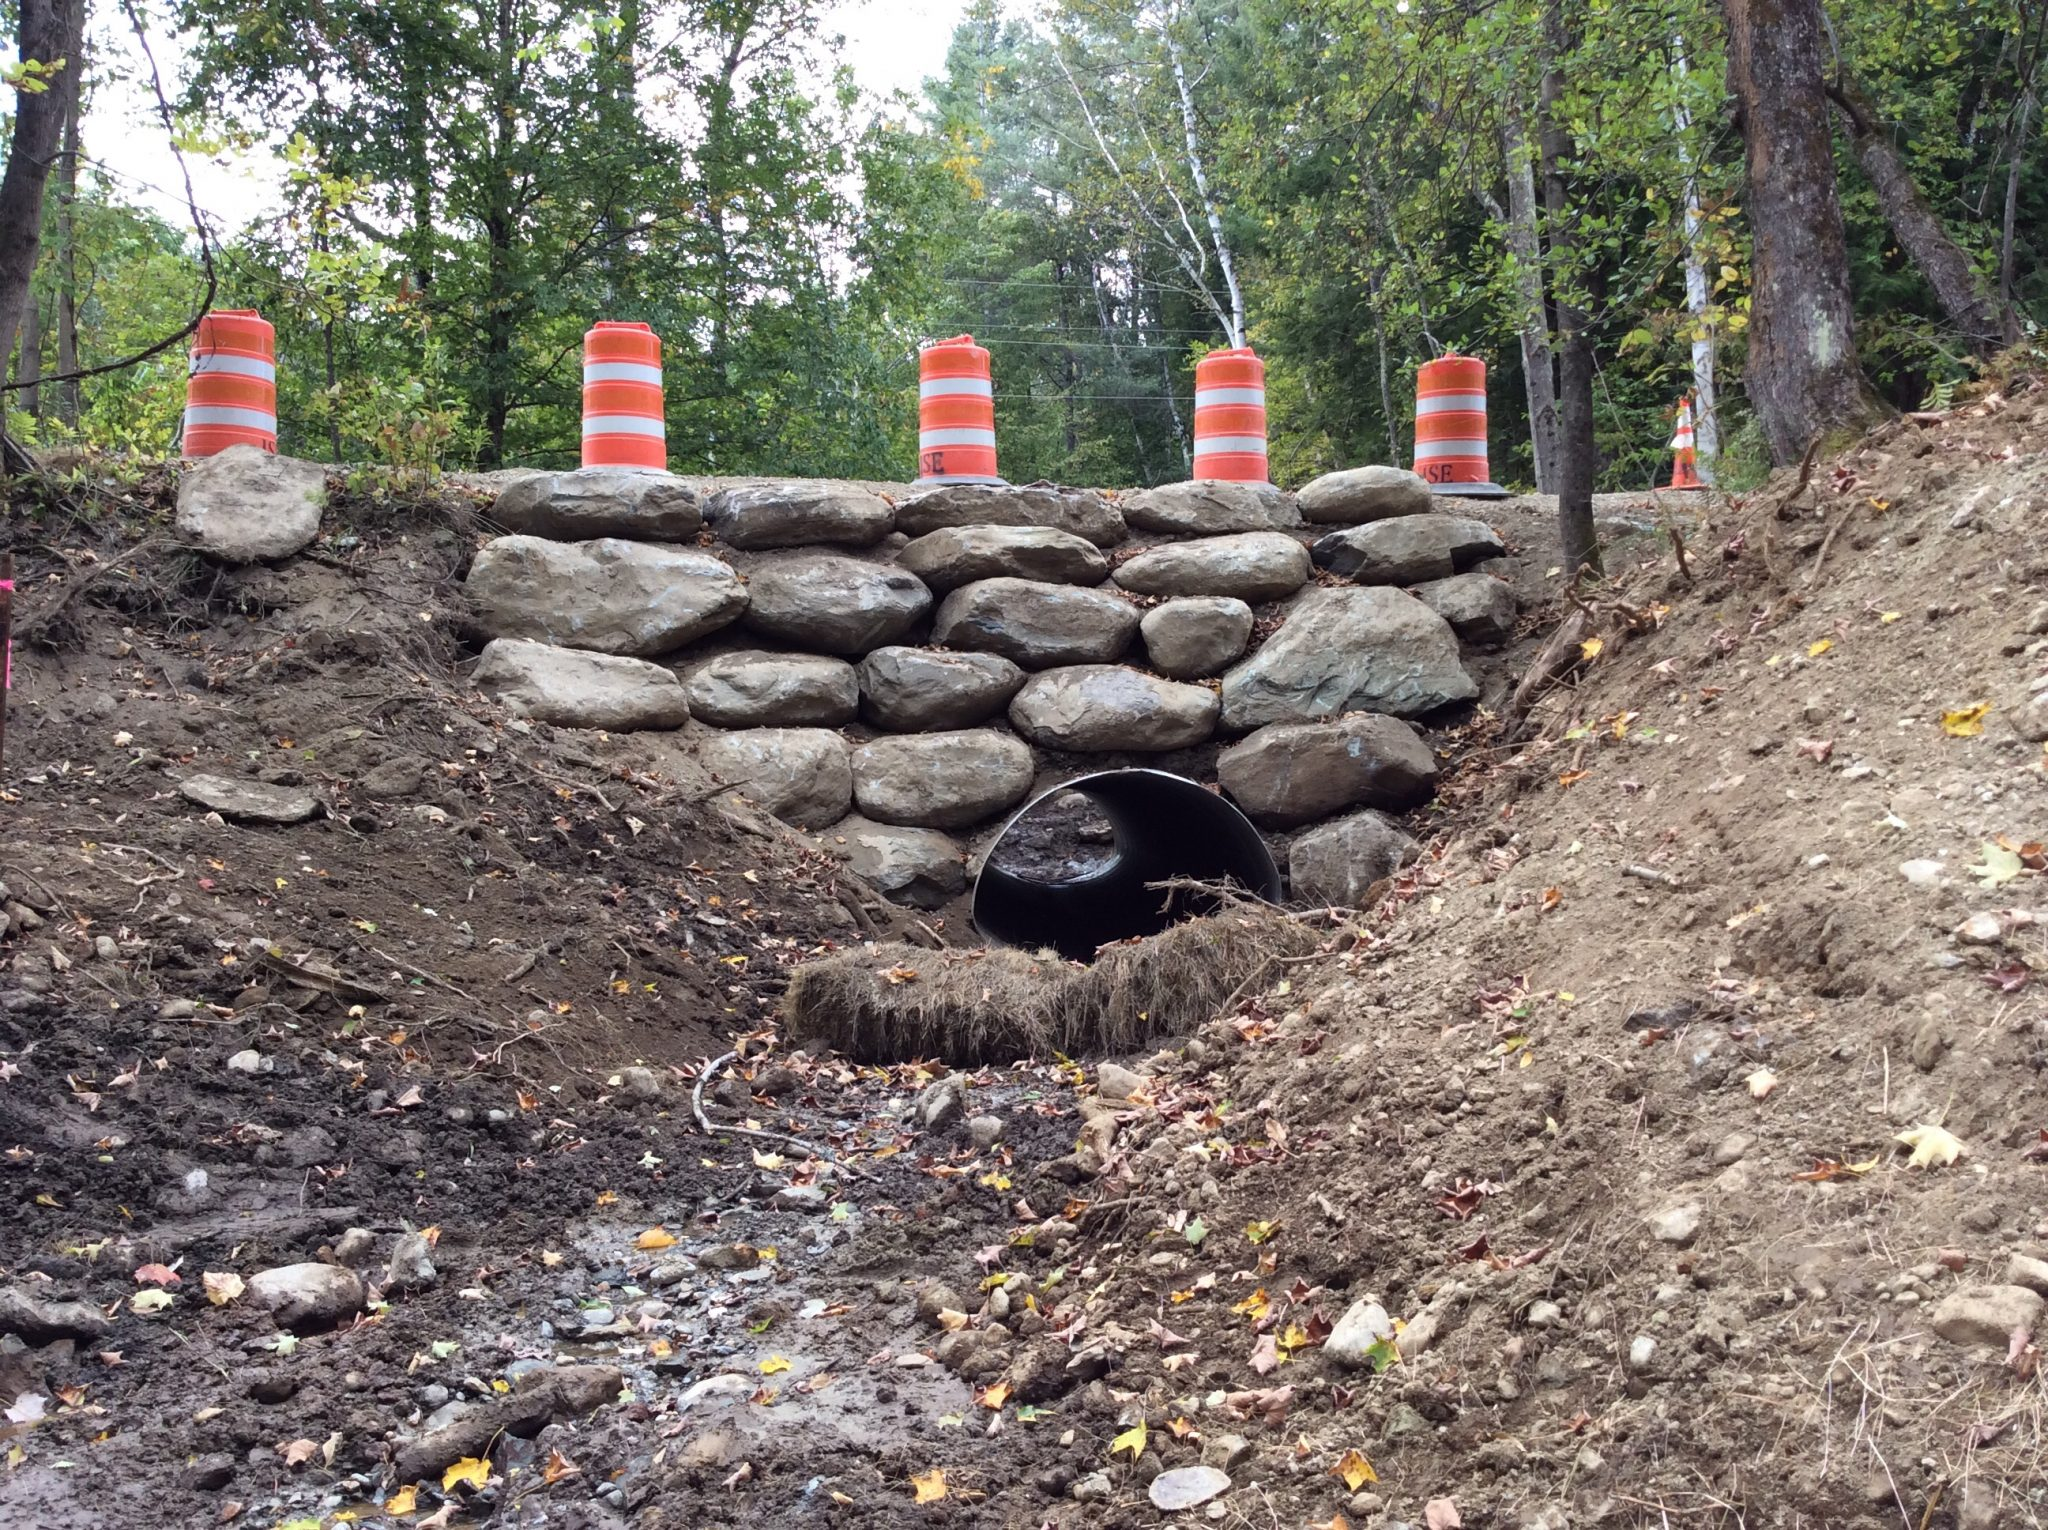 Boulders to support and protect the culvert and the road